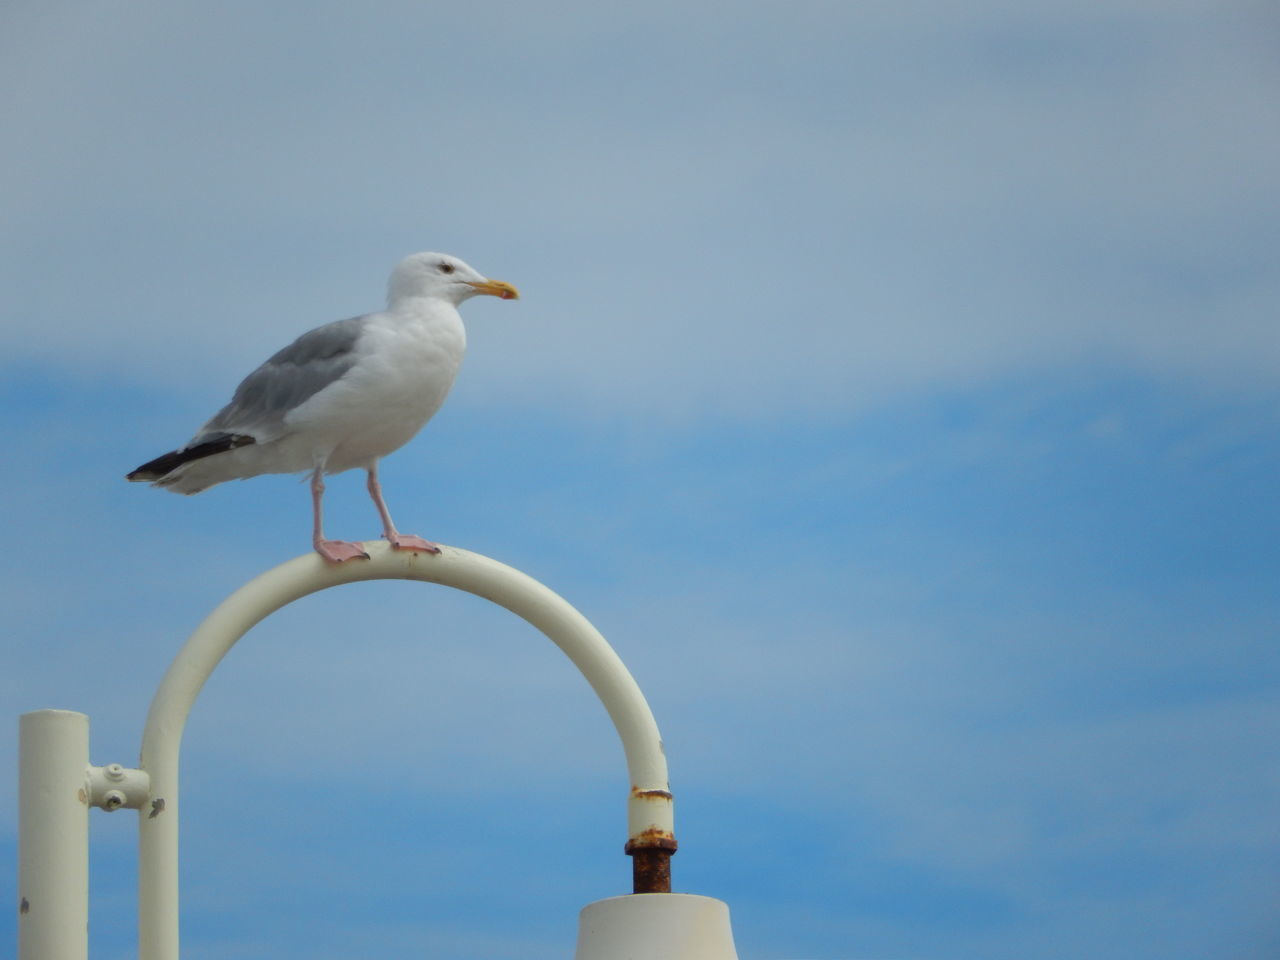 A seagull sitting on a lamp by the sea. Bird Clouds Day Nature No People One Animal Outdoors Perching Seagull Seagull On Lamp Seaside Sky